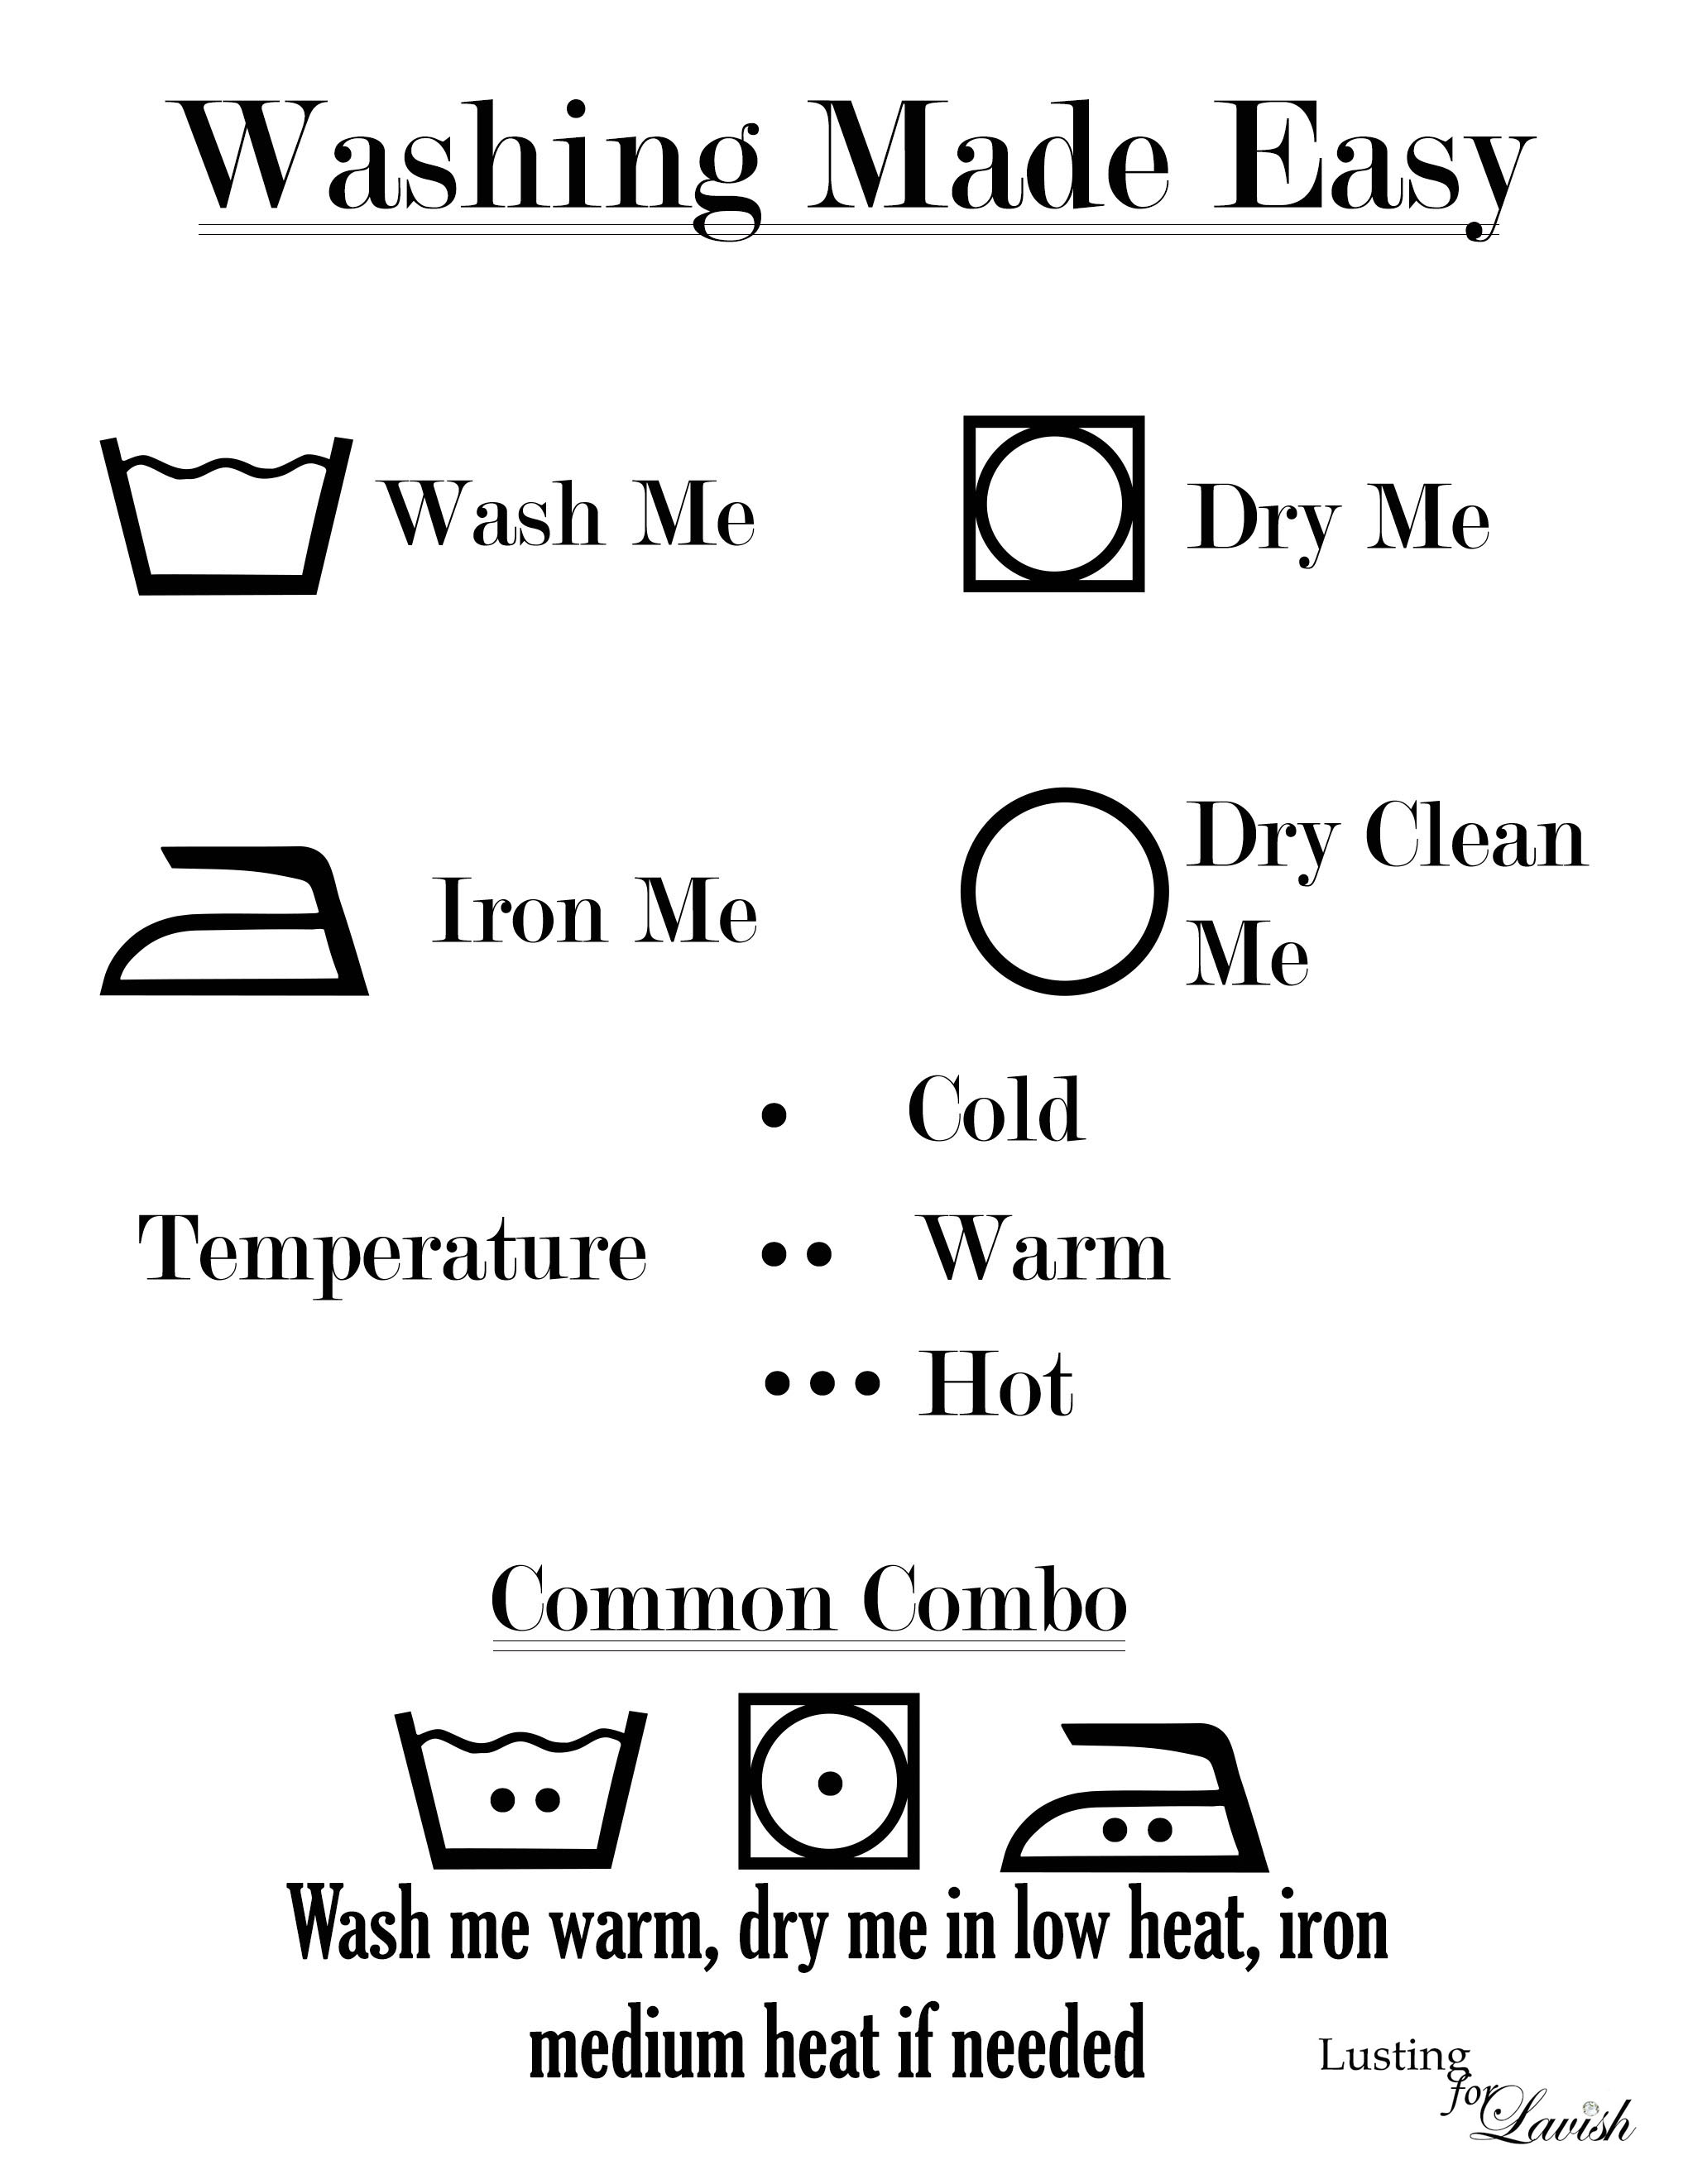 Symbol for dry clean image collections symbol and sign ideas diy wash symbol decoder lusting for lavish wash symbol decoder buycottarizona image collections biocorpaavc Choice Image